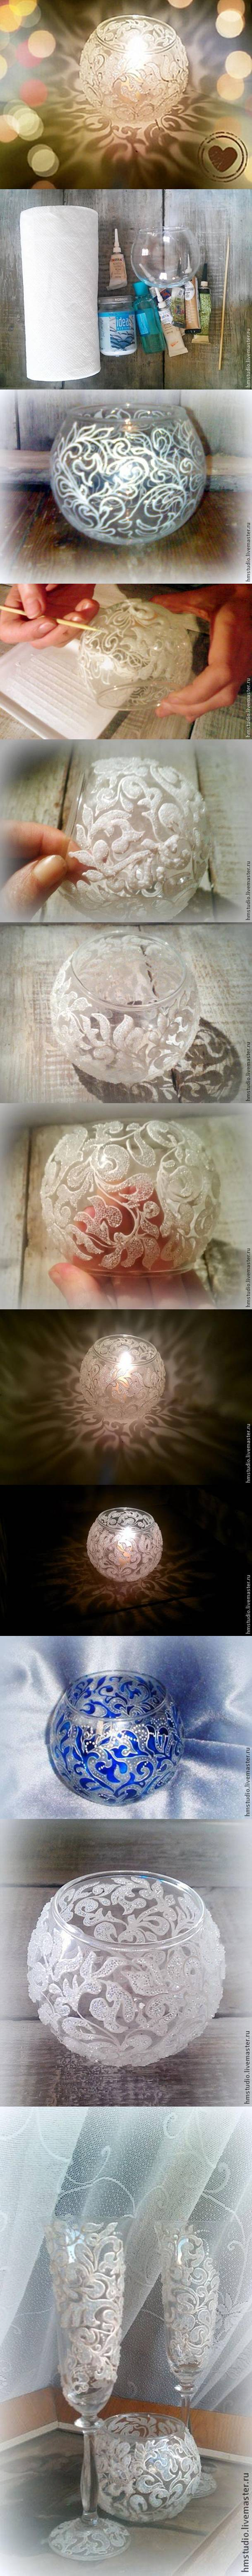 DIY-Frosty-Pattern-Vase.jpg